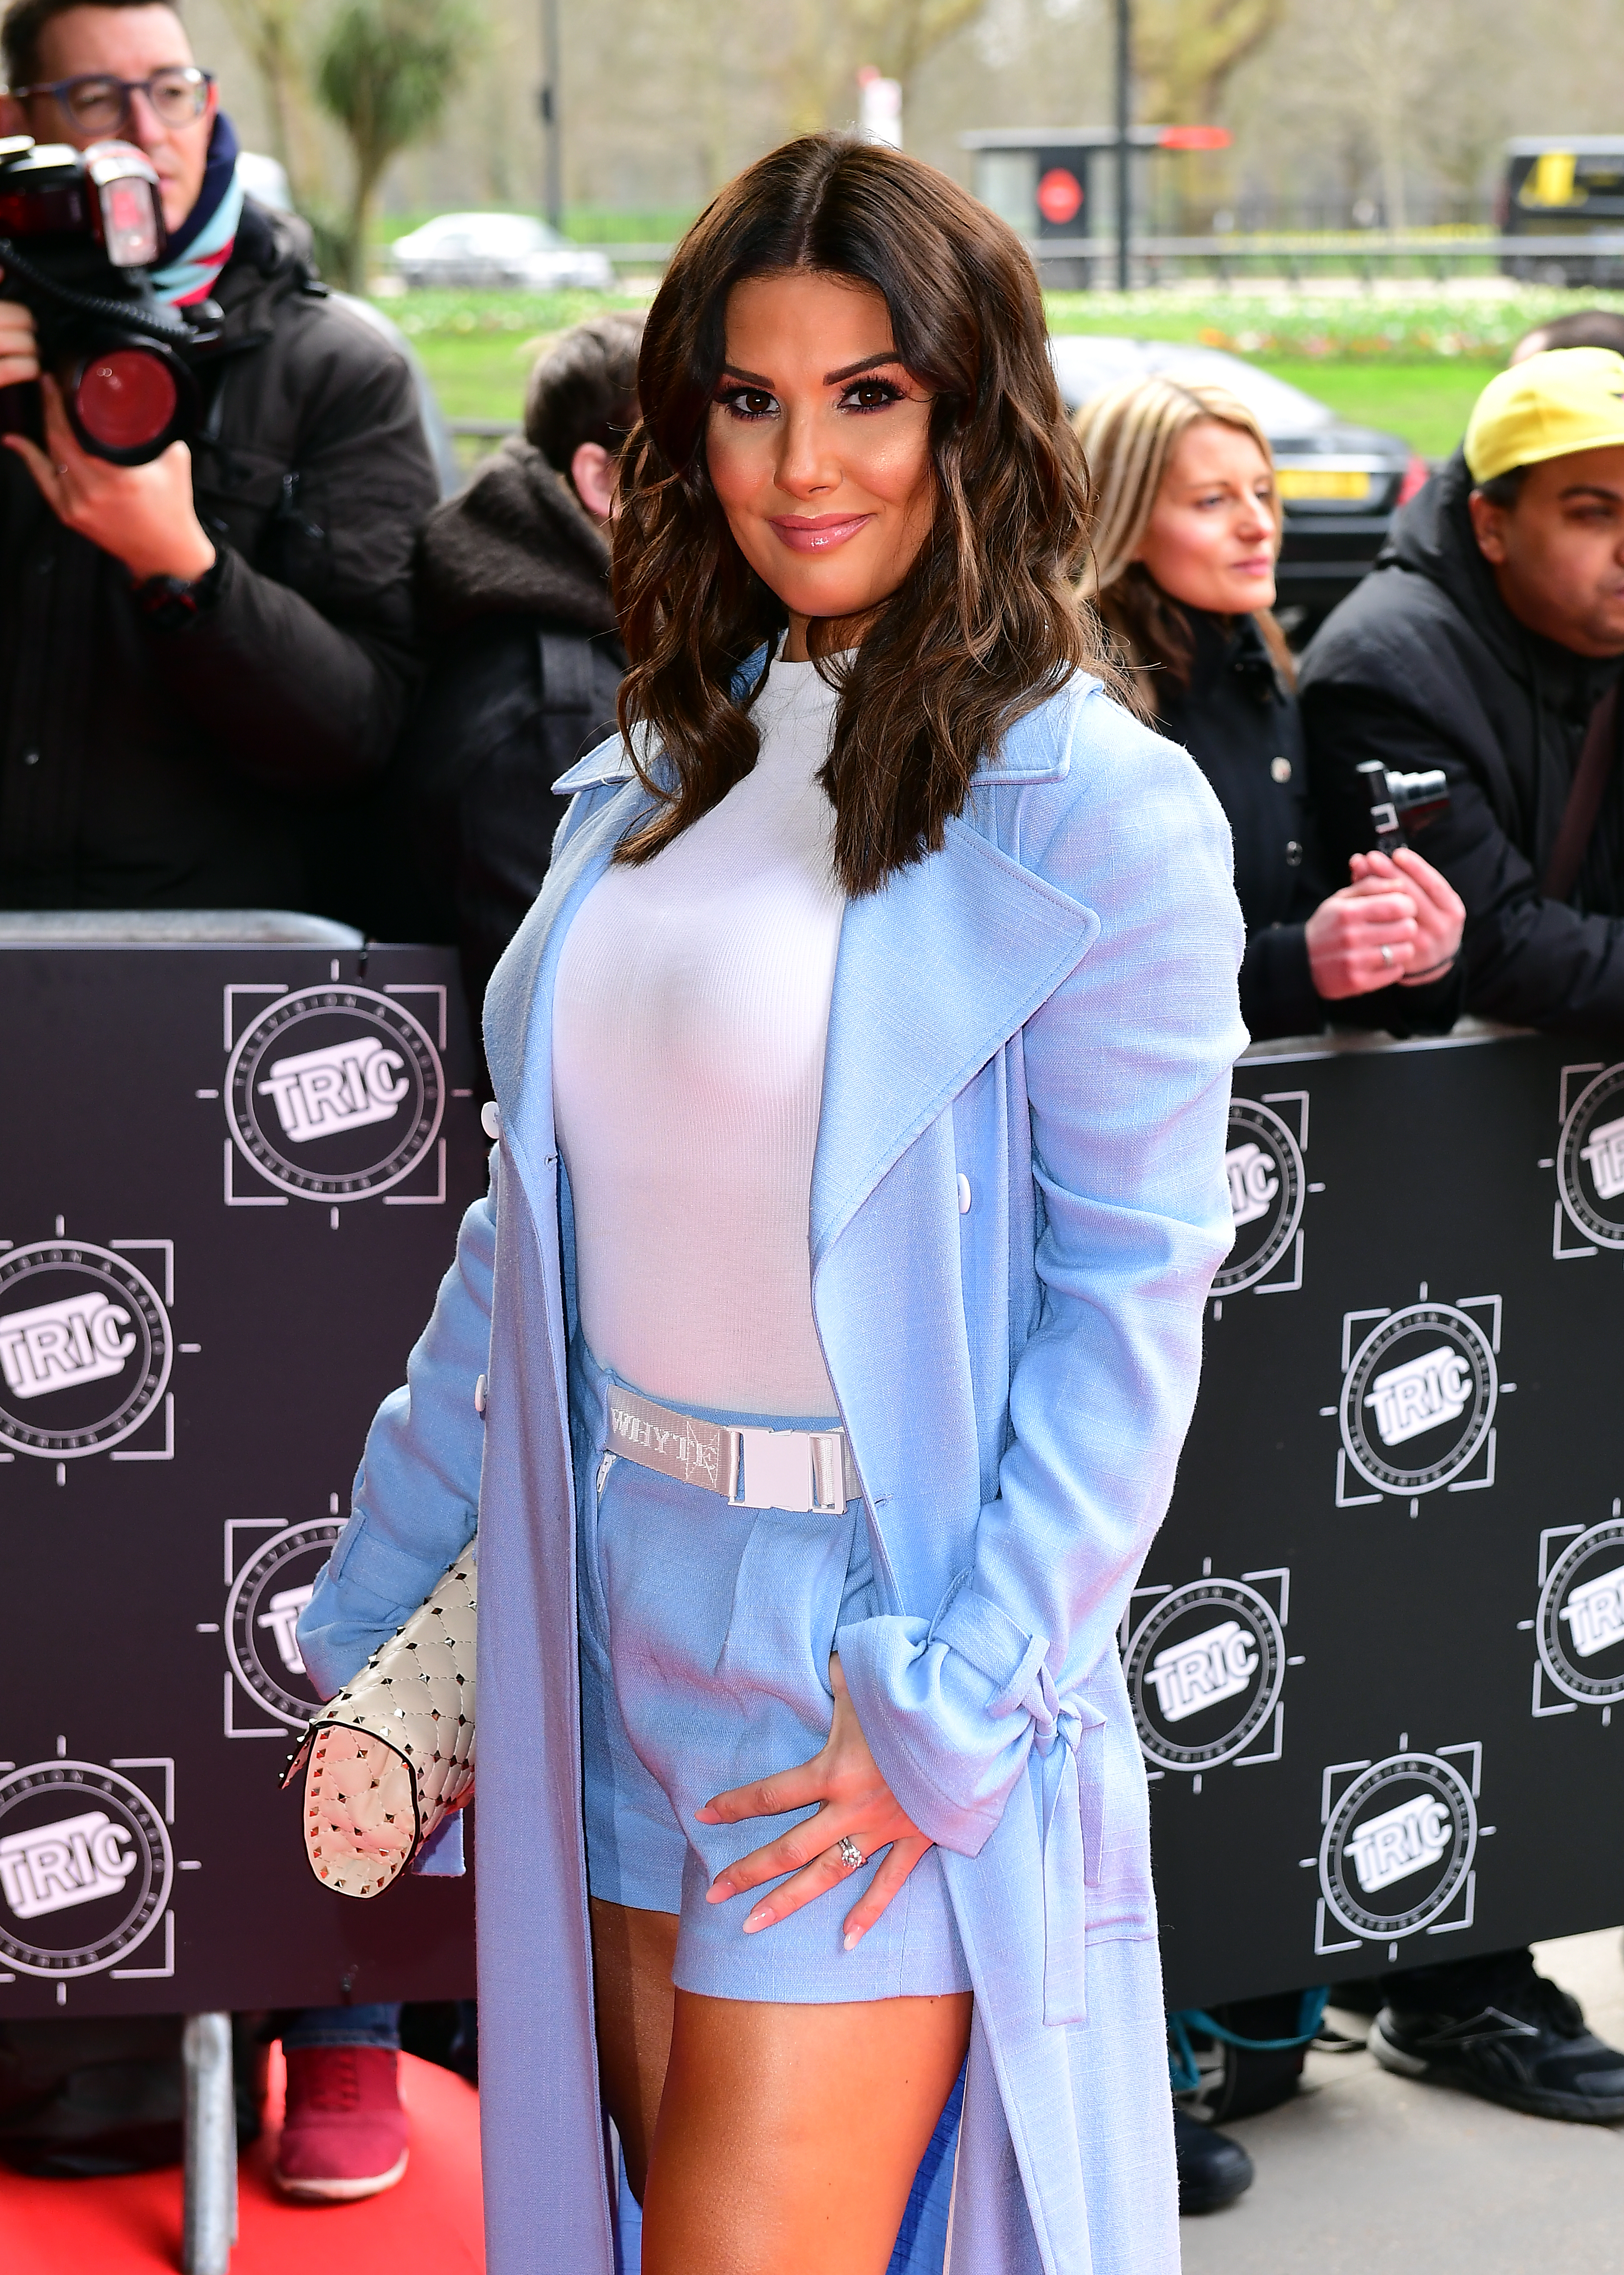 Rebekah Vardy attends the 2018 TRIC Awards at the Grosvenor House Hotel, London.